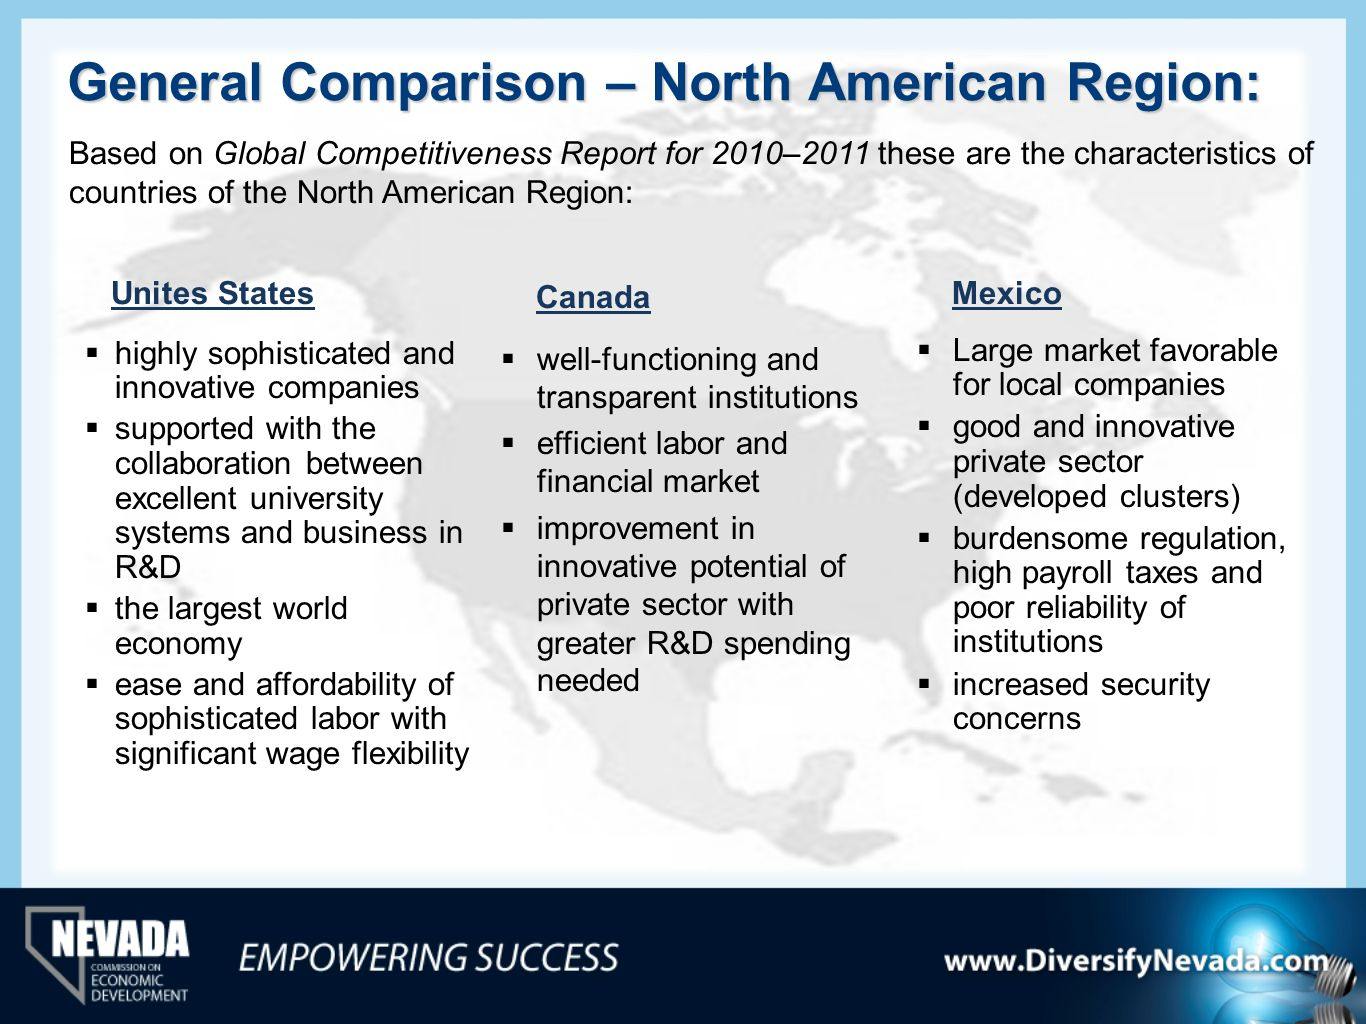 General Comparison – North American Region: Unites States highly sophisticated and innovative companies supported with the collaboration between excel